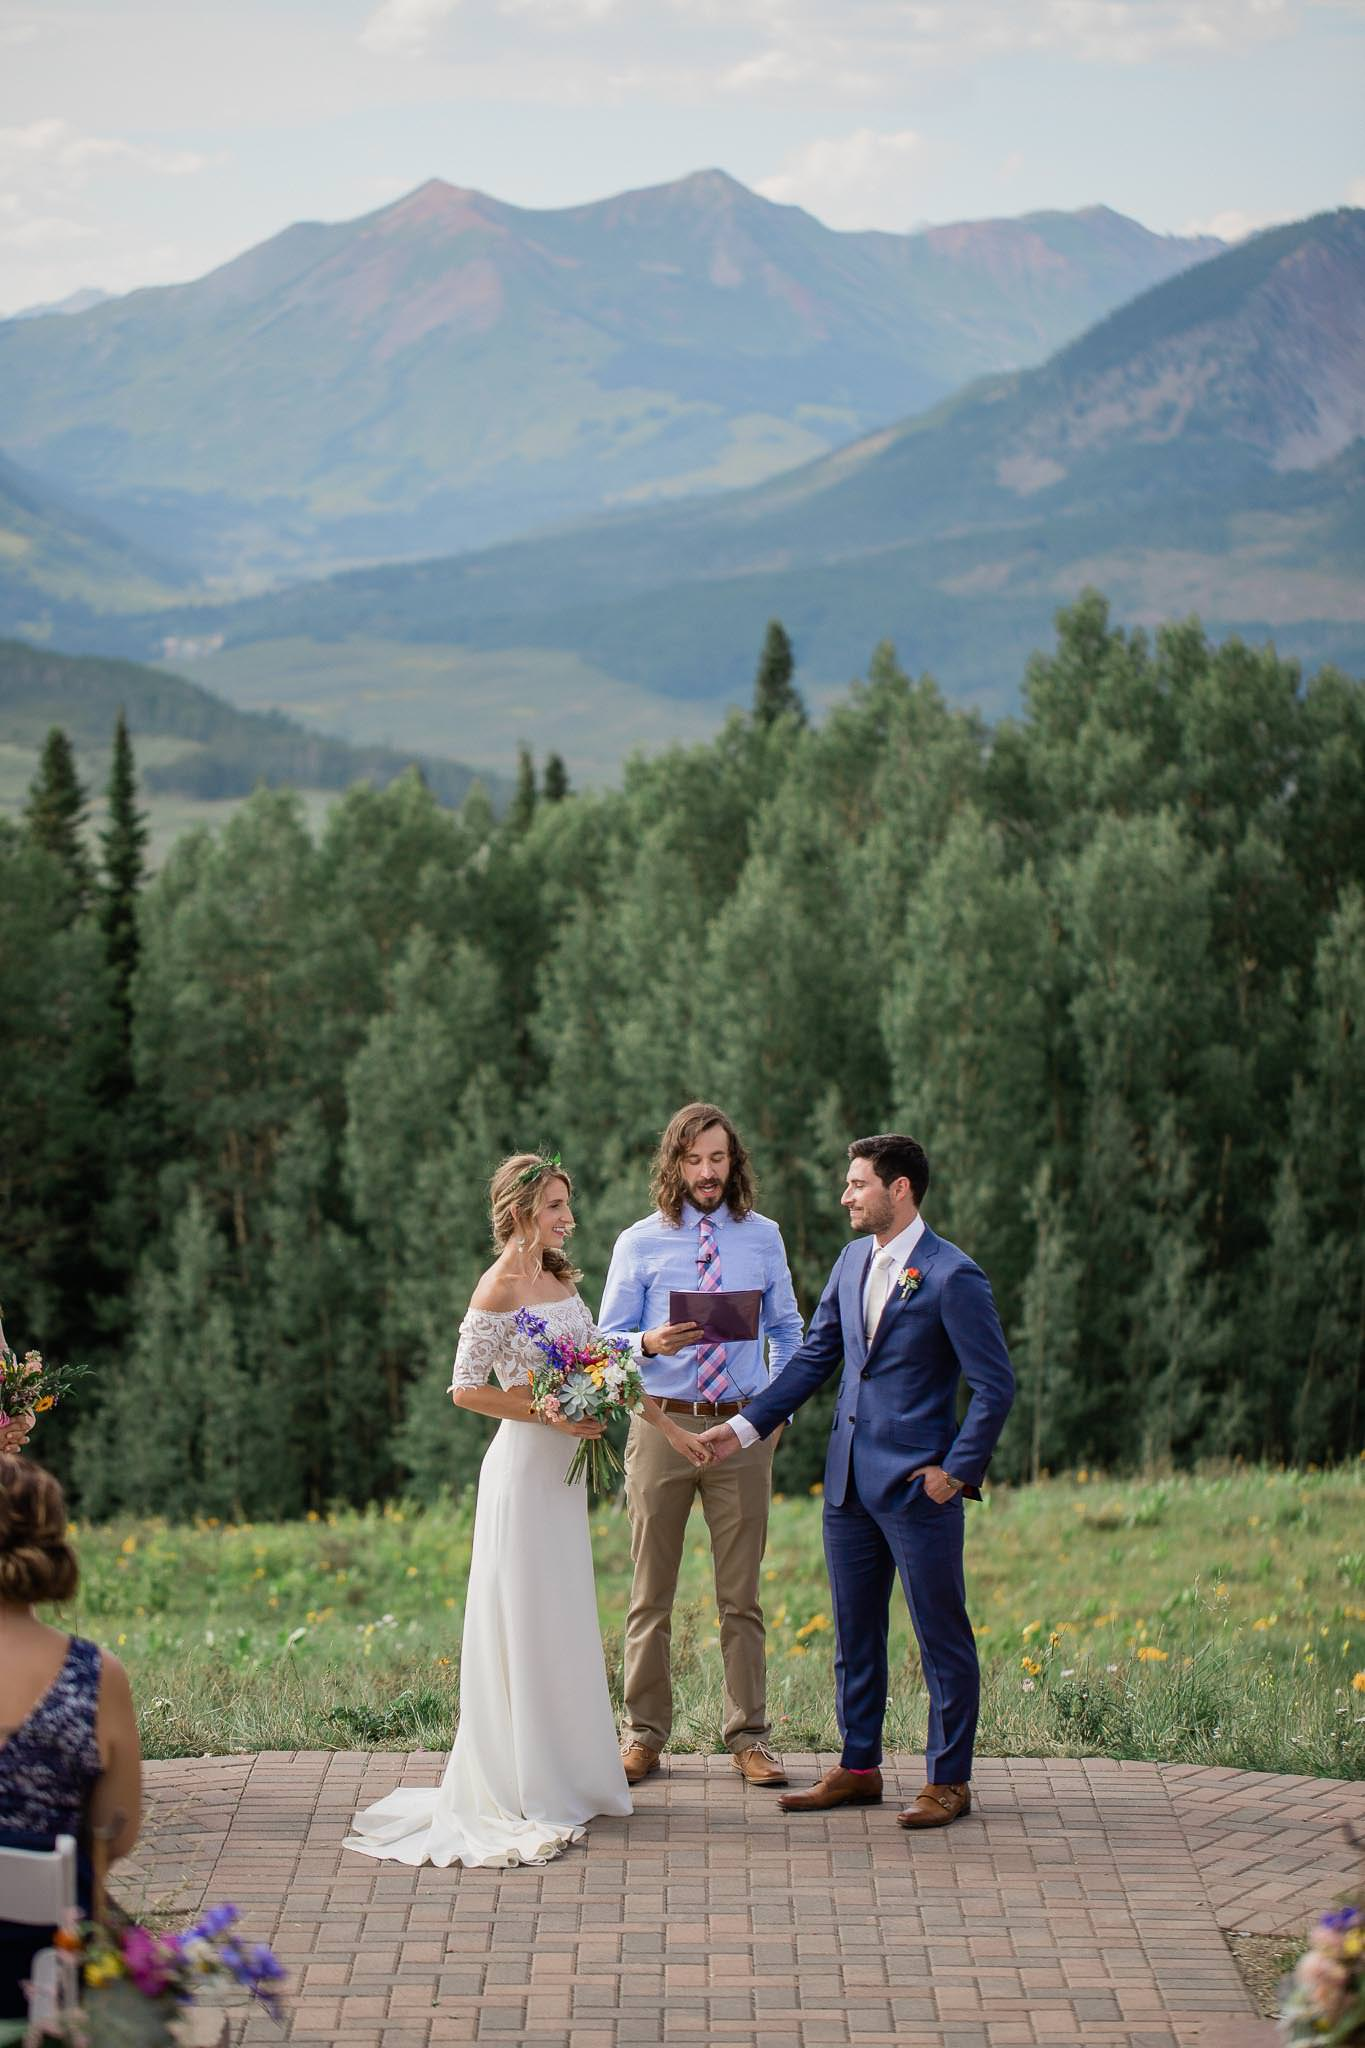 Epic adventure wedding ceremony in Crested Butte Colorado with mountain views